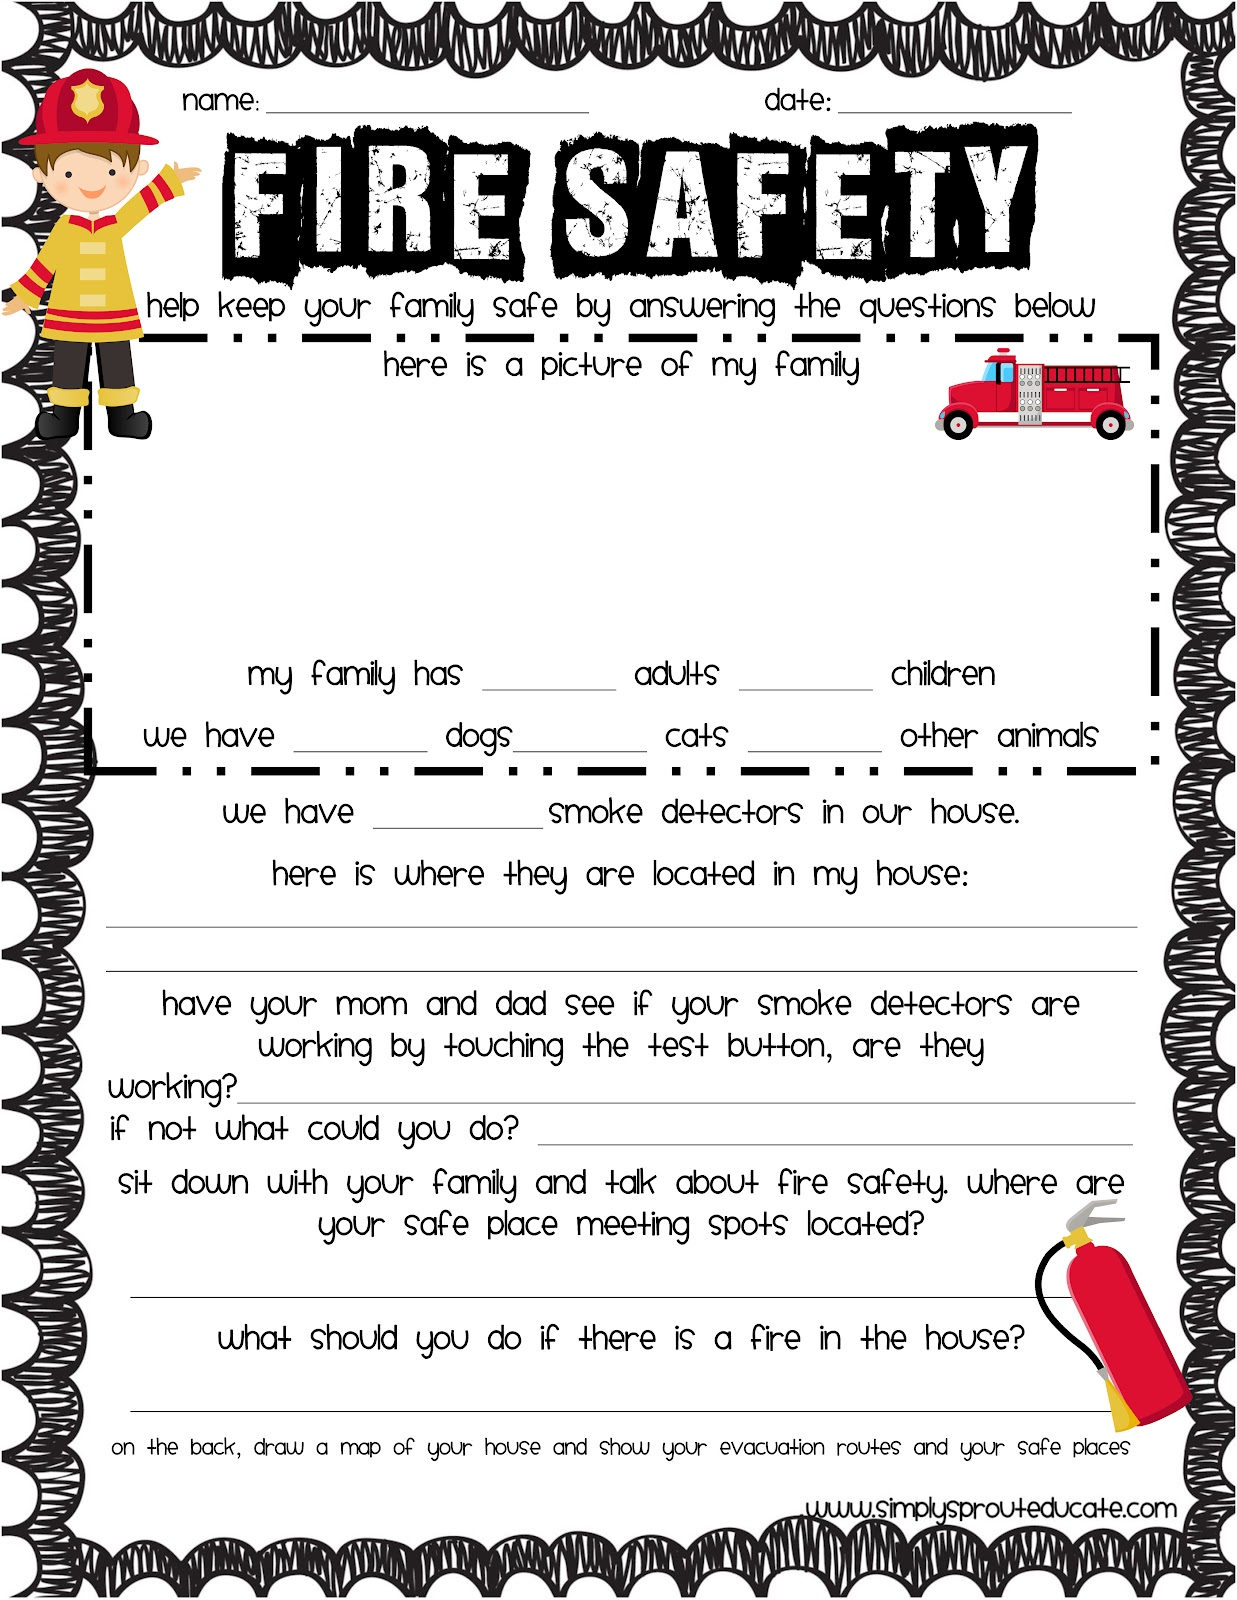 Irresistible image inside fire safety printable